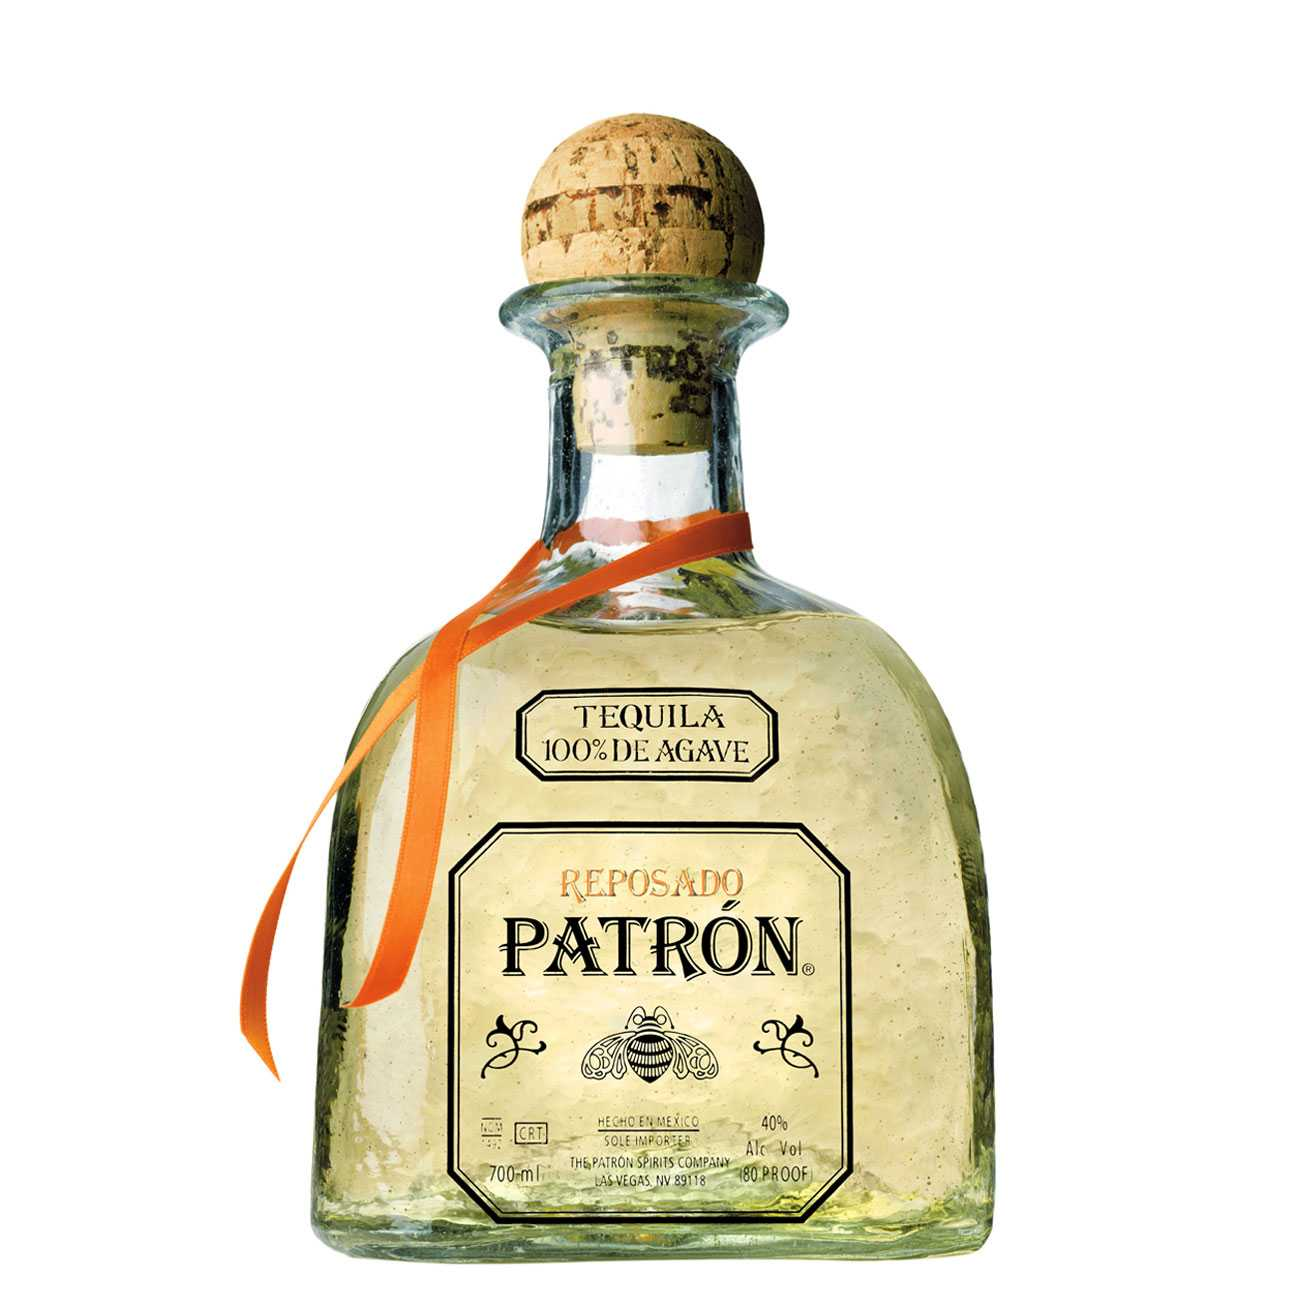 Tequila, REPOSADO 700 ML, Patron